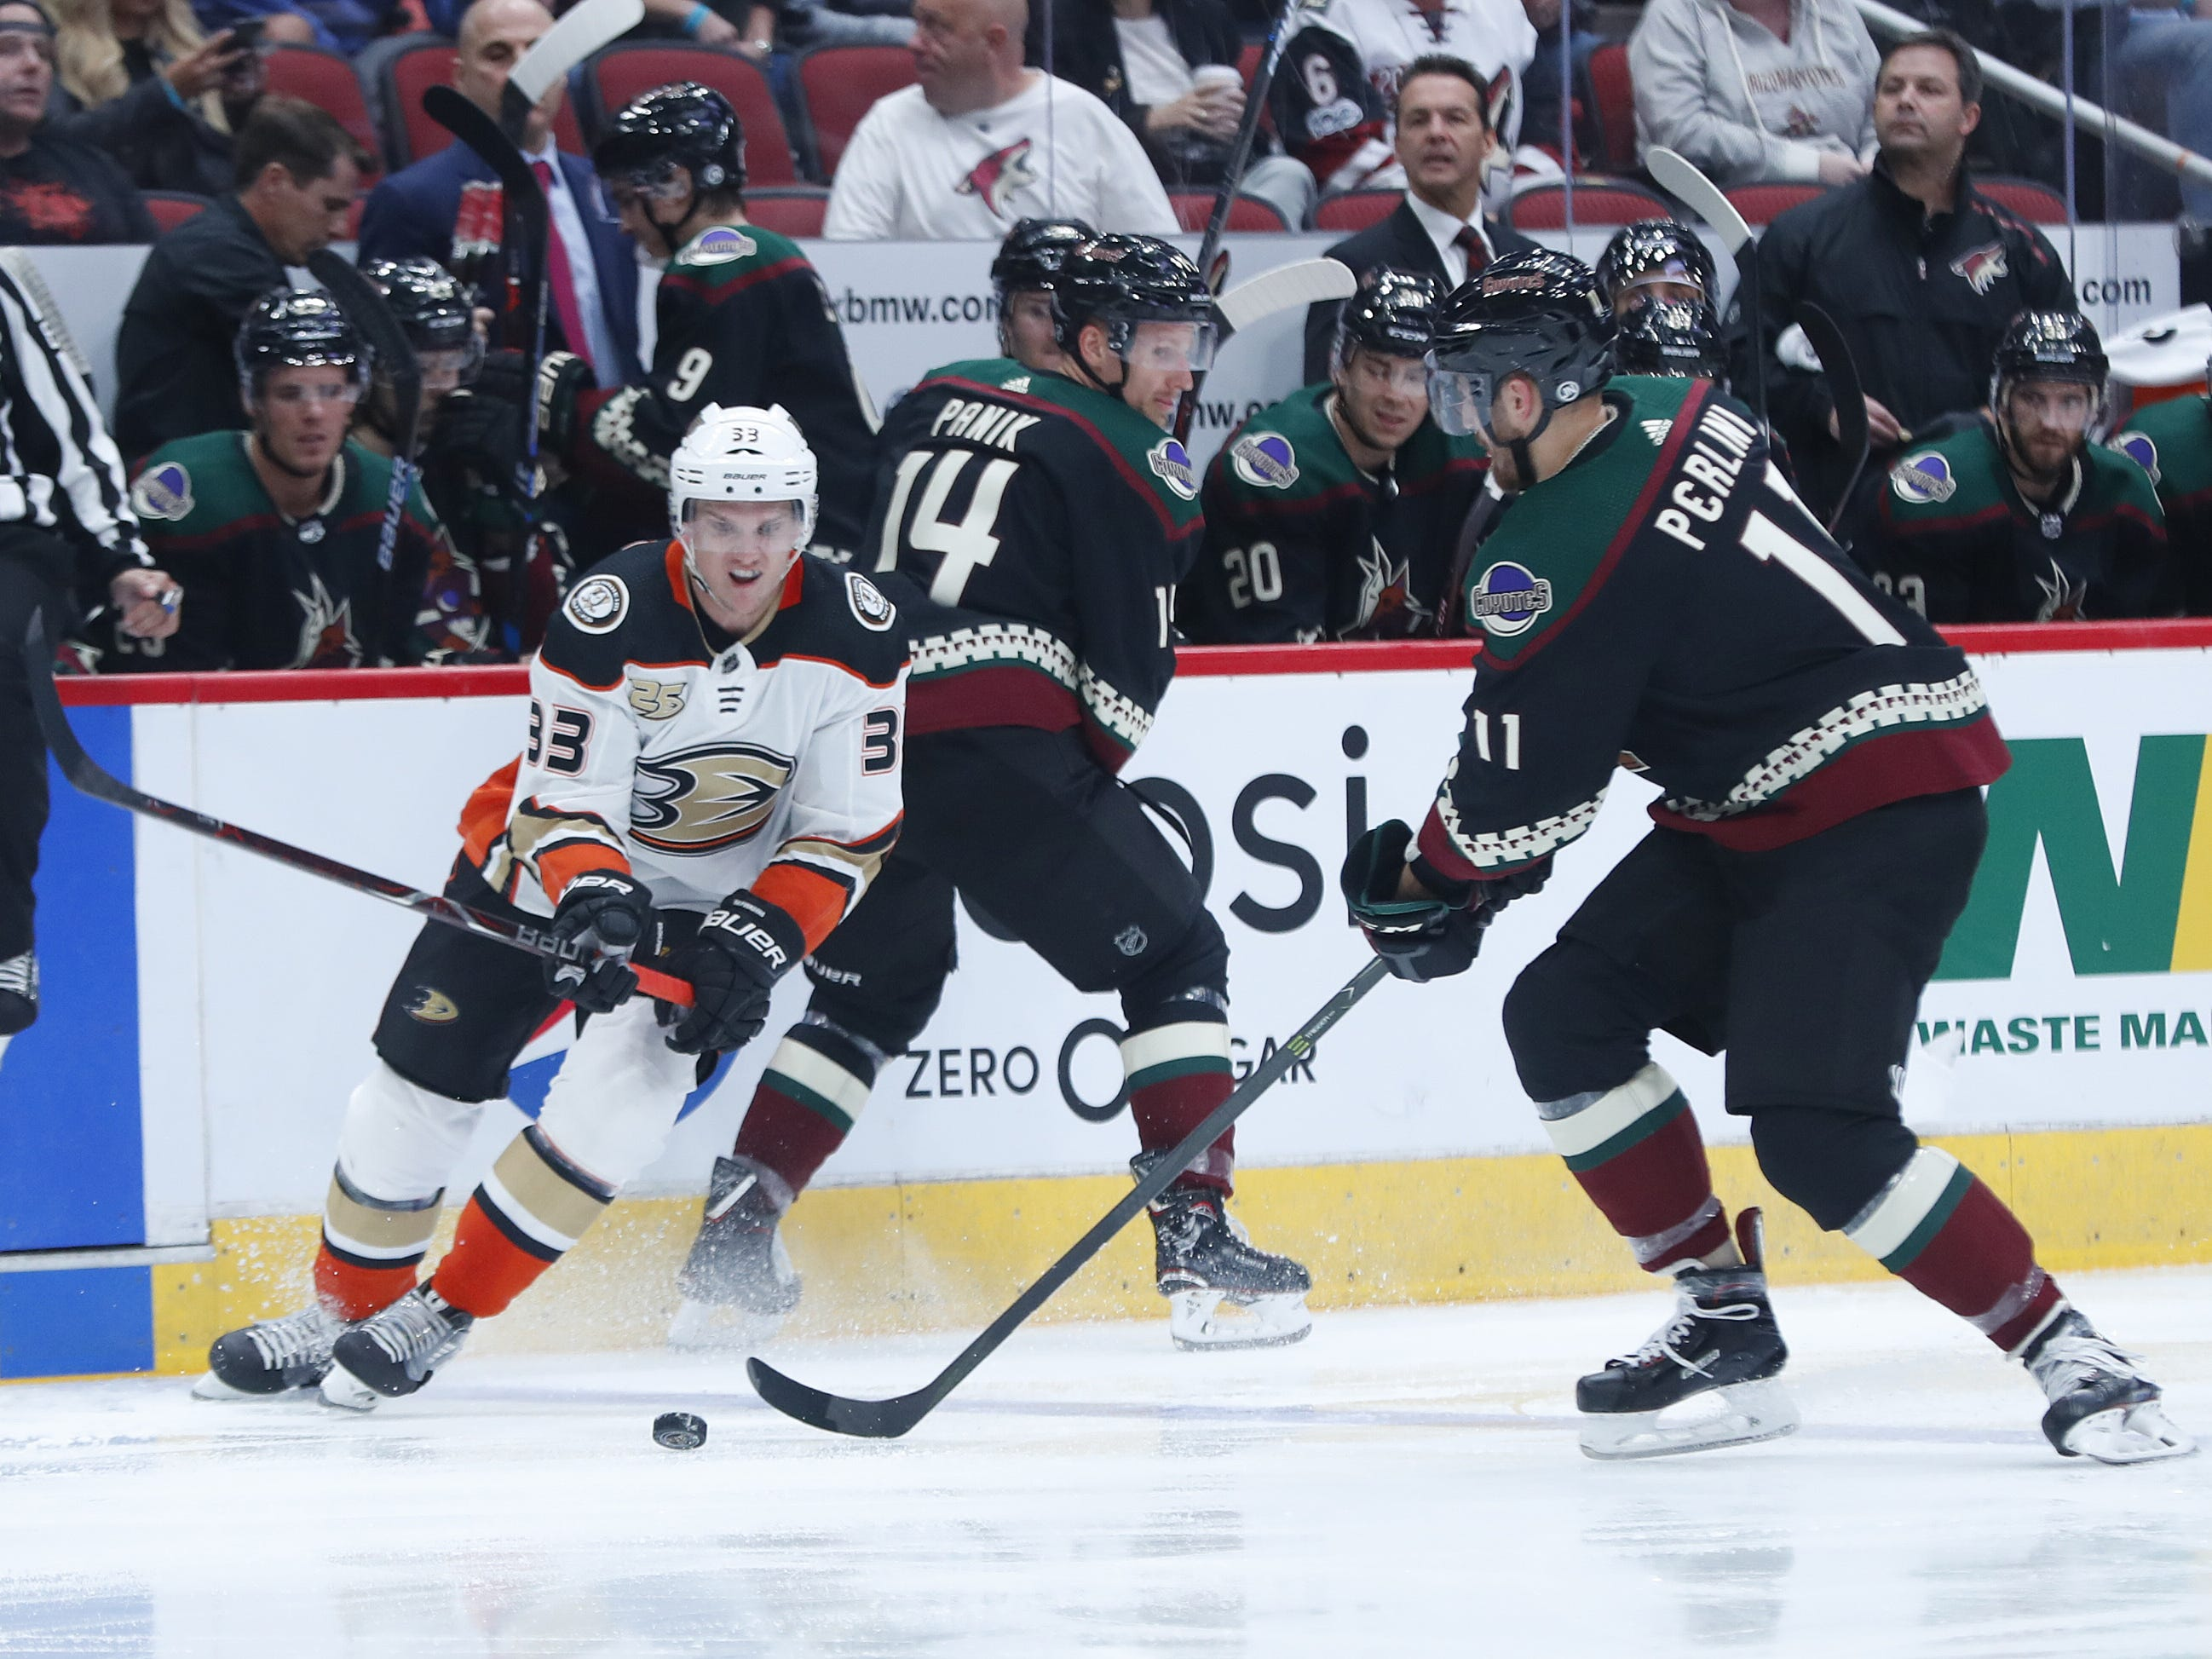 Coyotes Brandan Perlini (11) recovers a puck lost by Ducks Jakob Silfverberg (33) during the second period at Gila River Arena in Glendale, Ariz. on October 6, 2018.